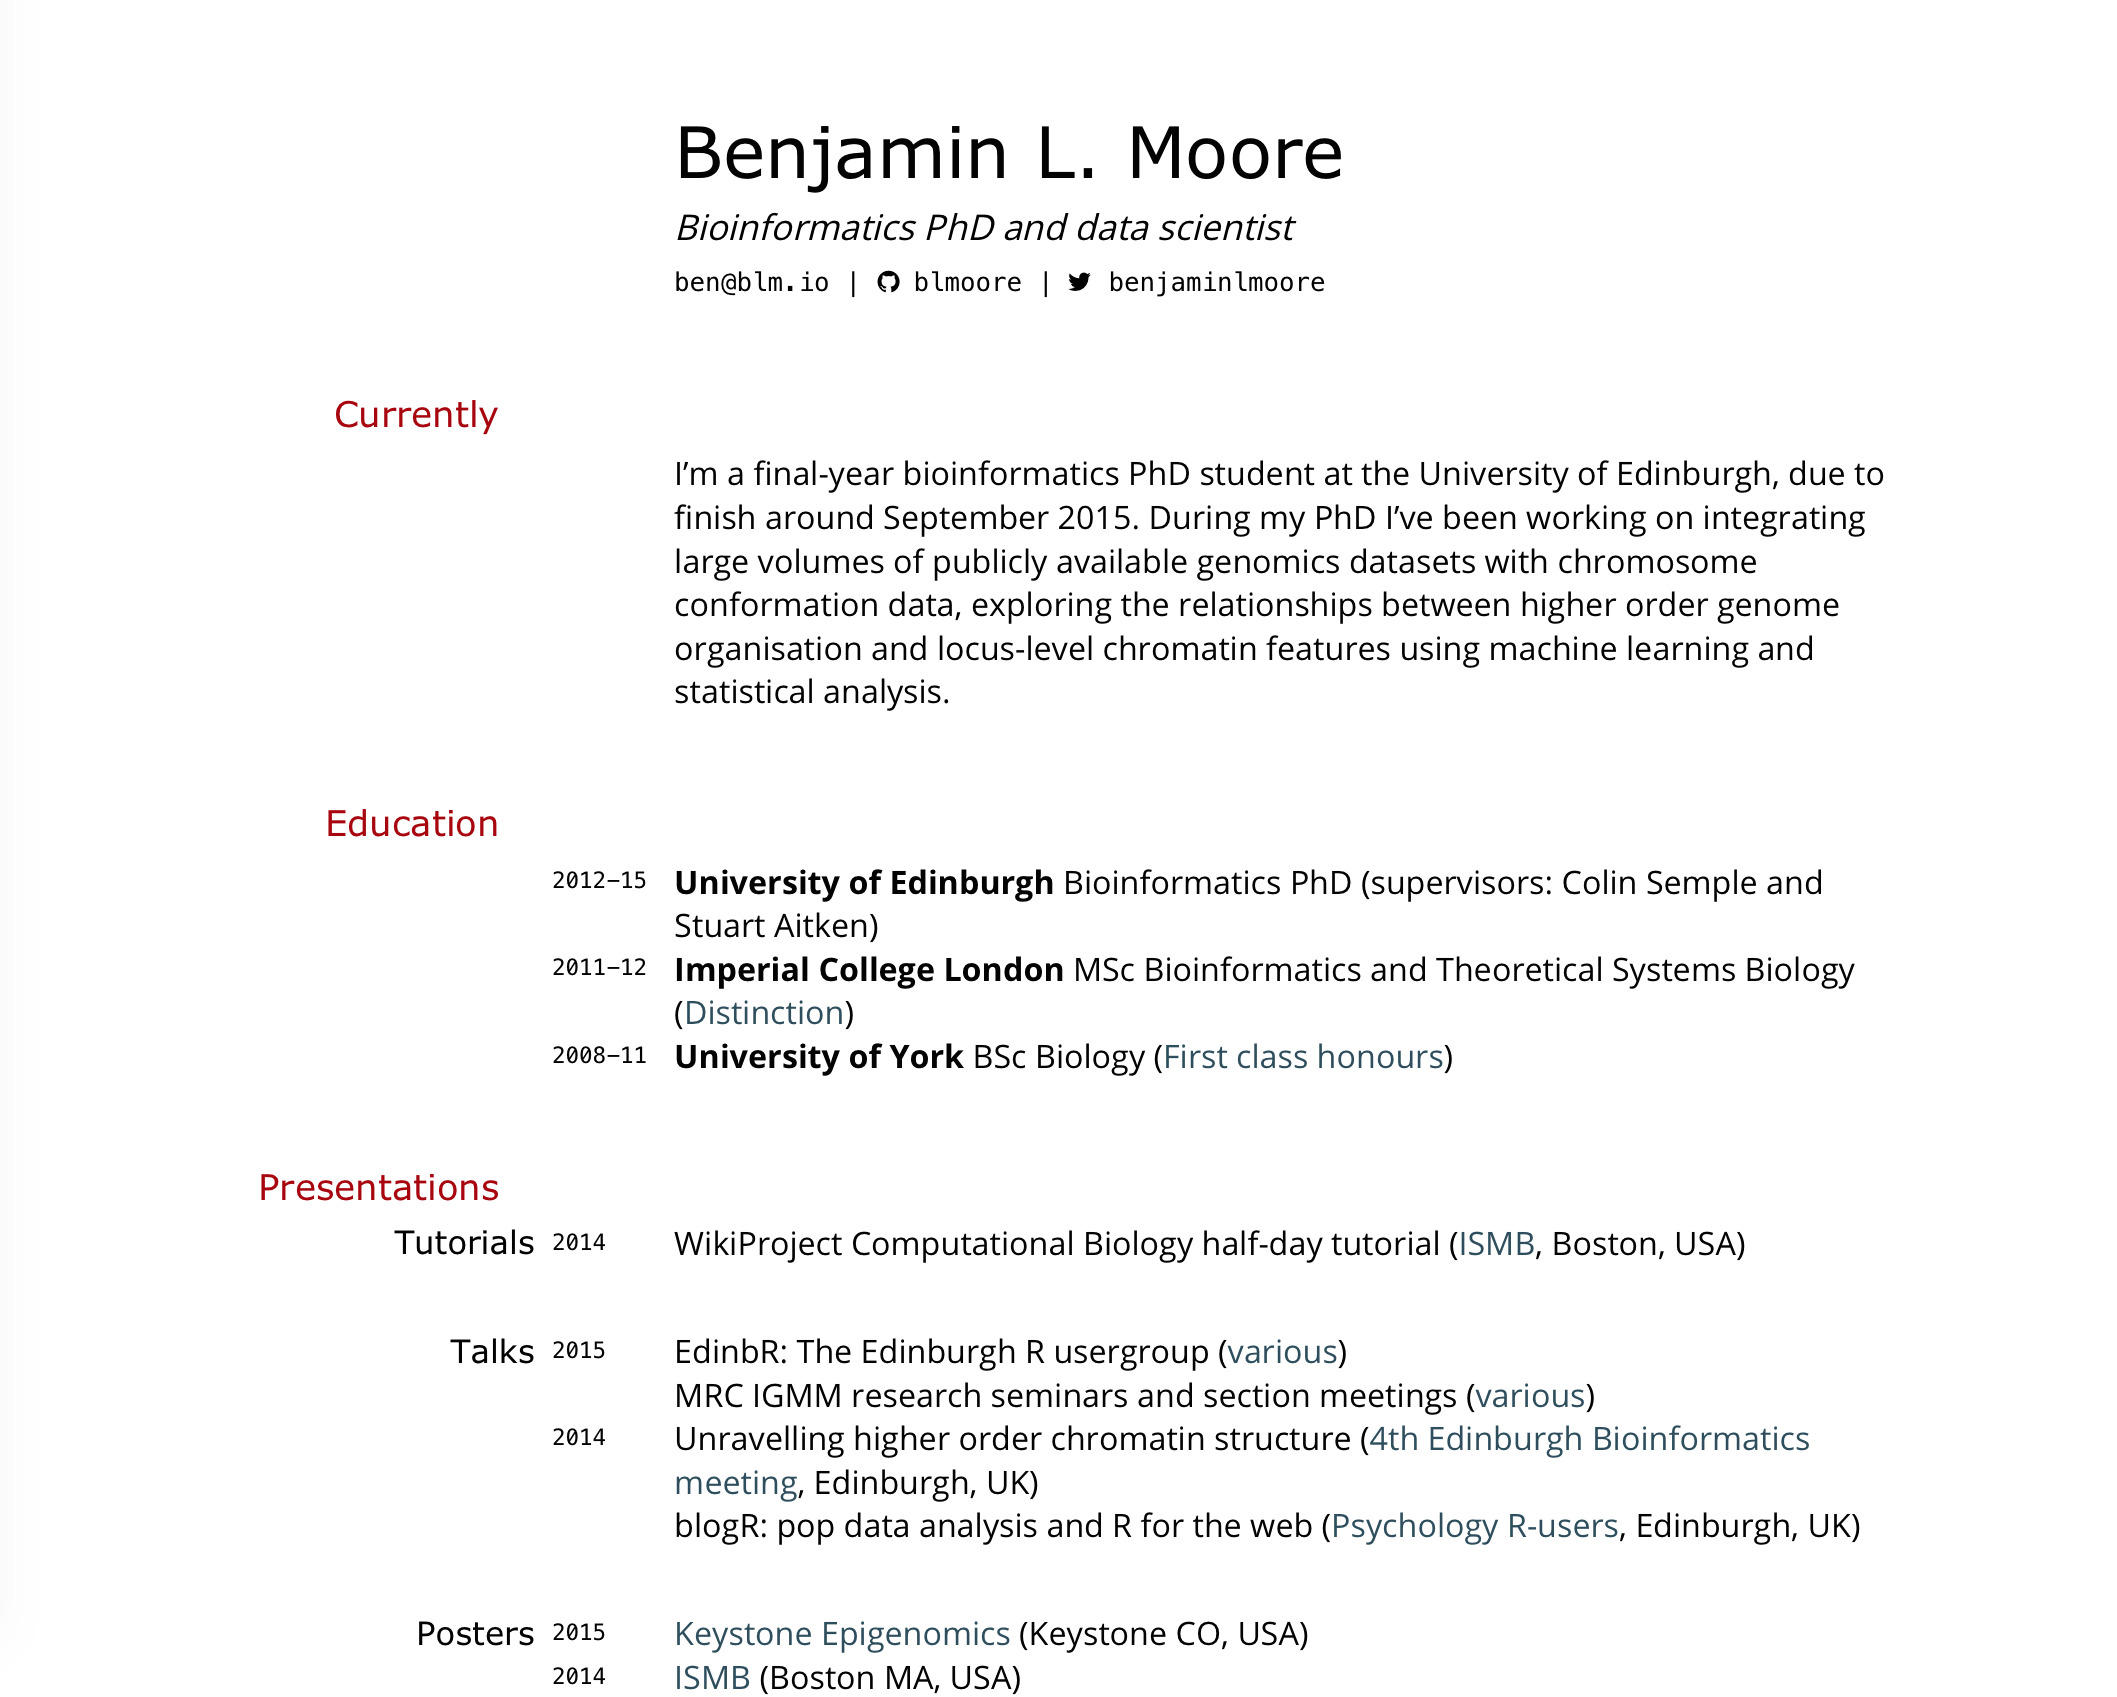 building an academic cv in markdown 183 blm io